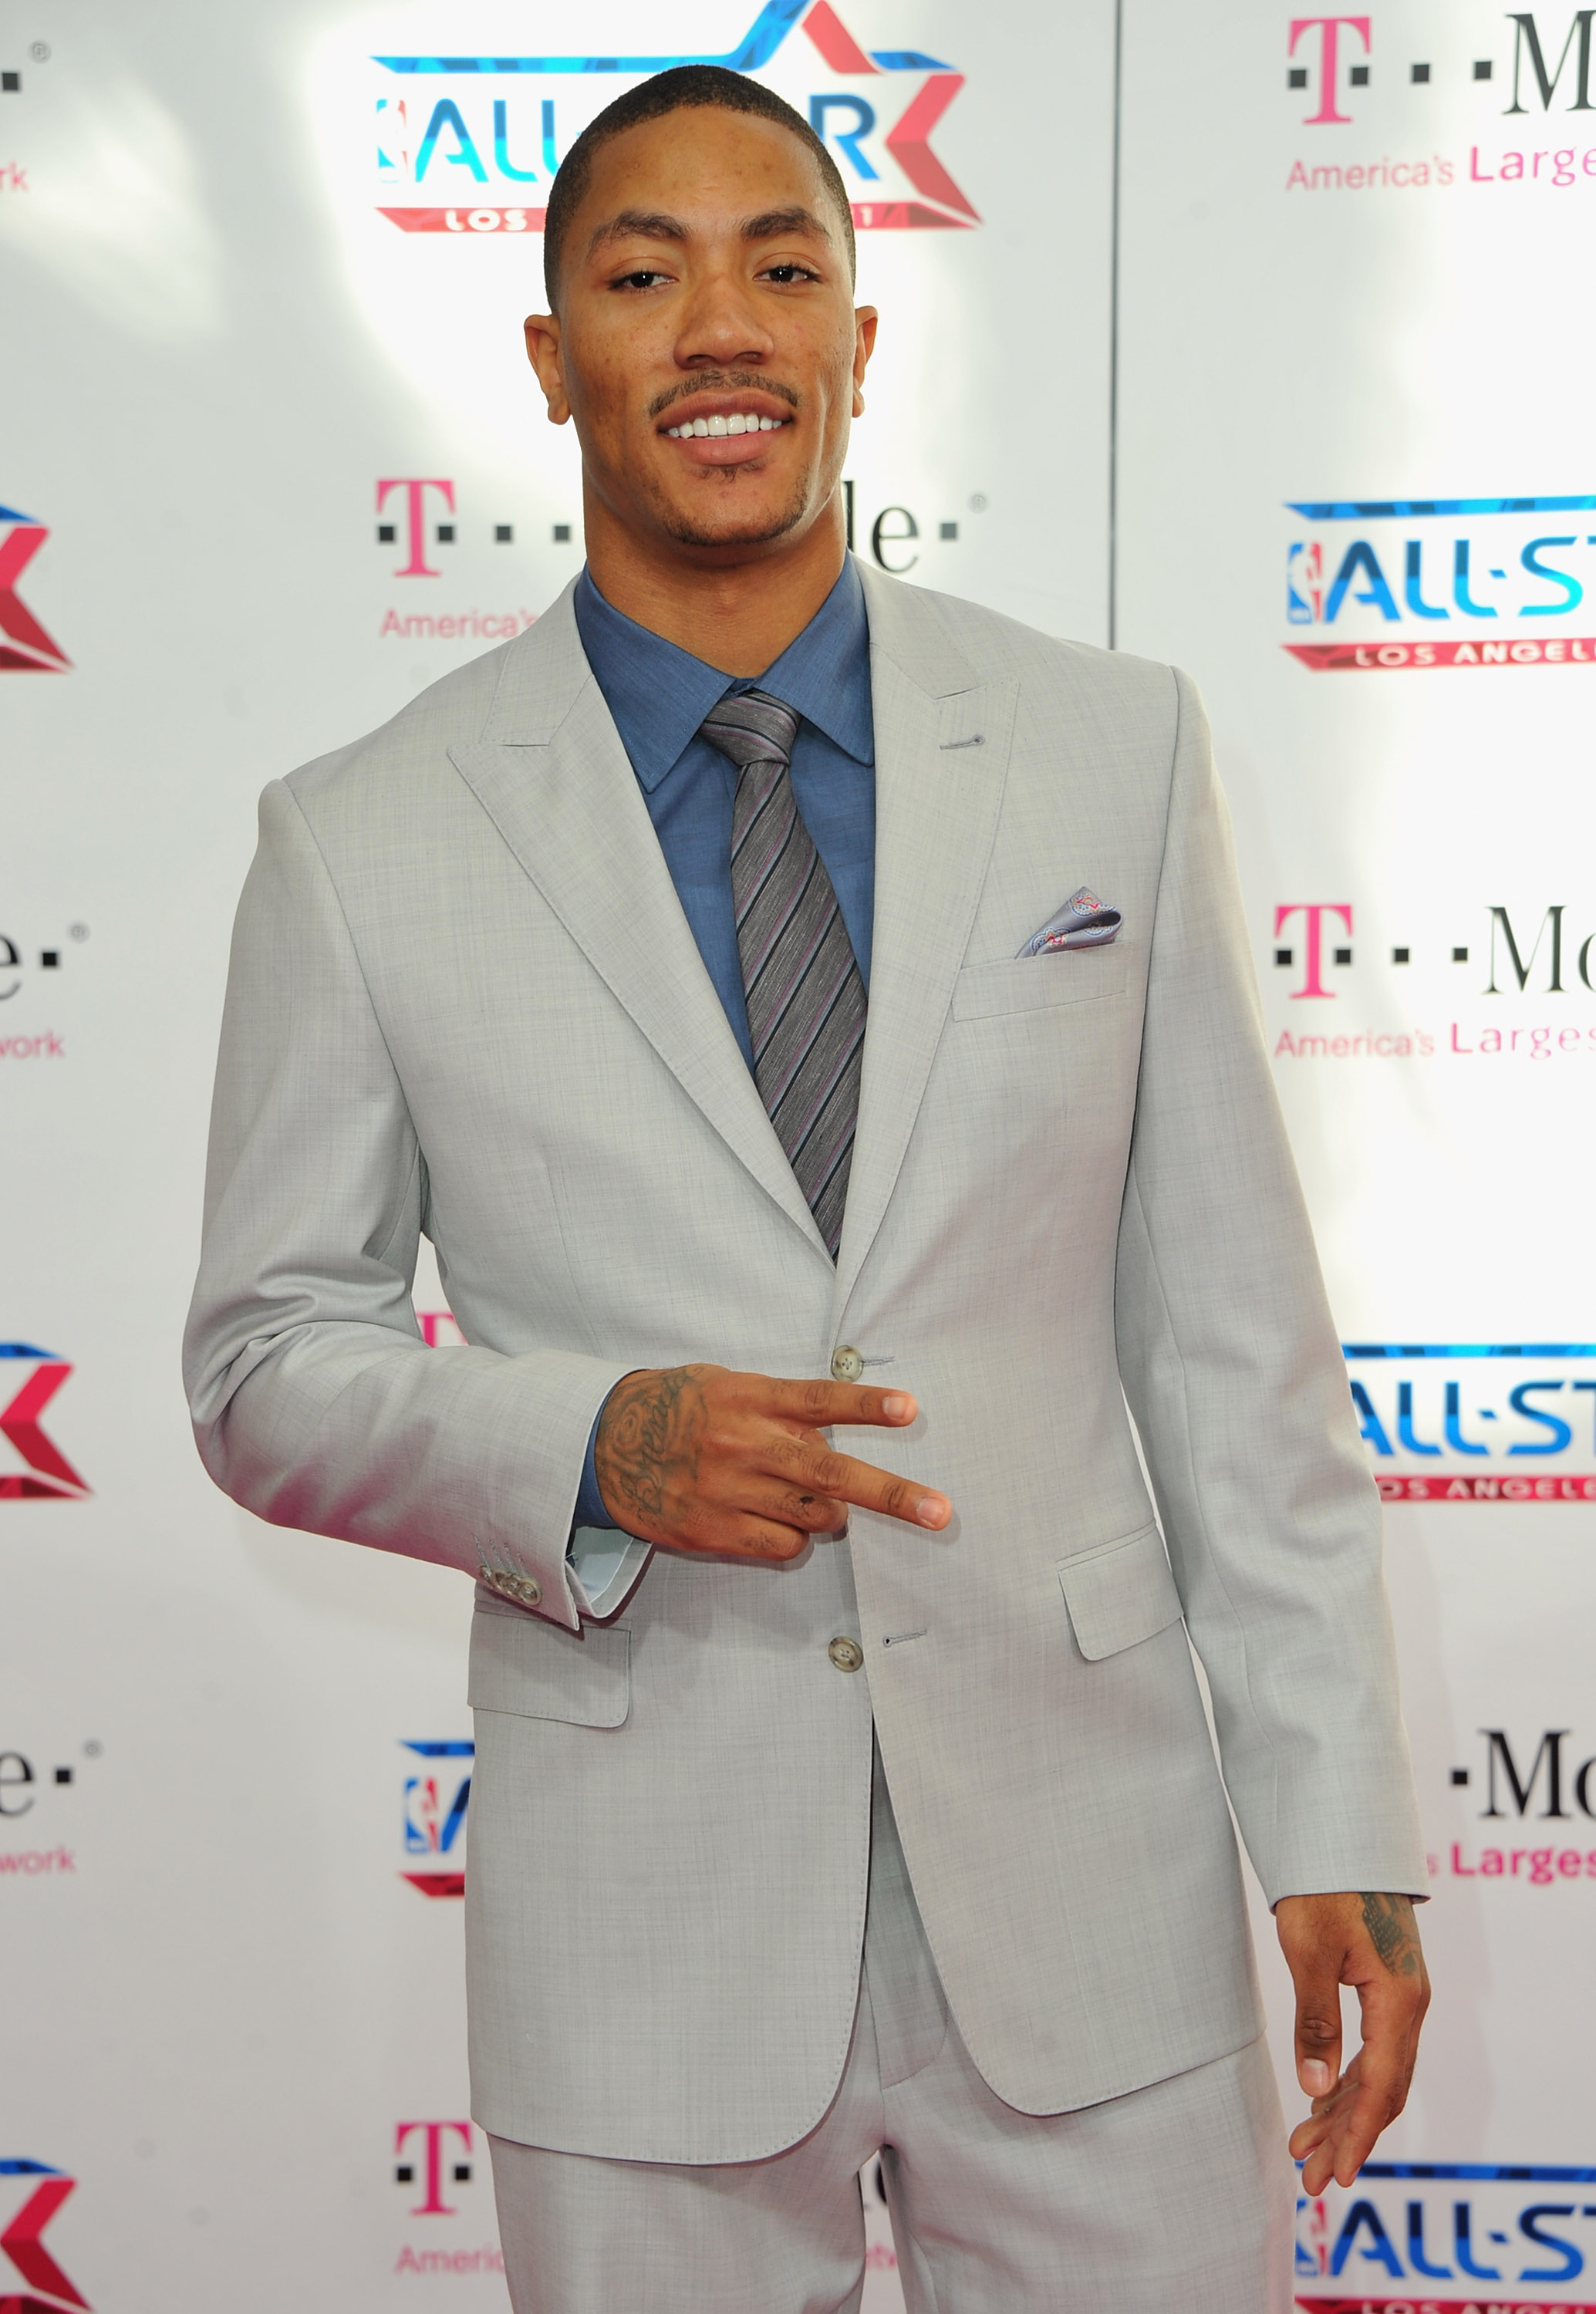 LOS ANGELES, CA - FEBRUARY 20:  NBA player Derrick Rose arrives to the T-Mobile Magenta Carpet at the 2011 NBA All-Star Game on February 20, 2011 in Los Angeles, California.  (Photo by Alberto E. Rodriguez/Getty Images)